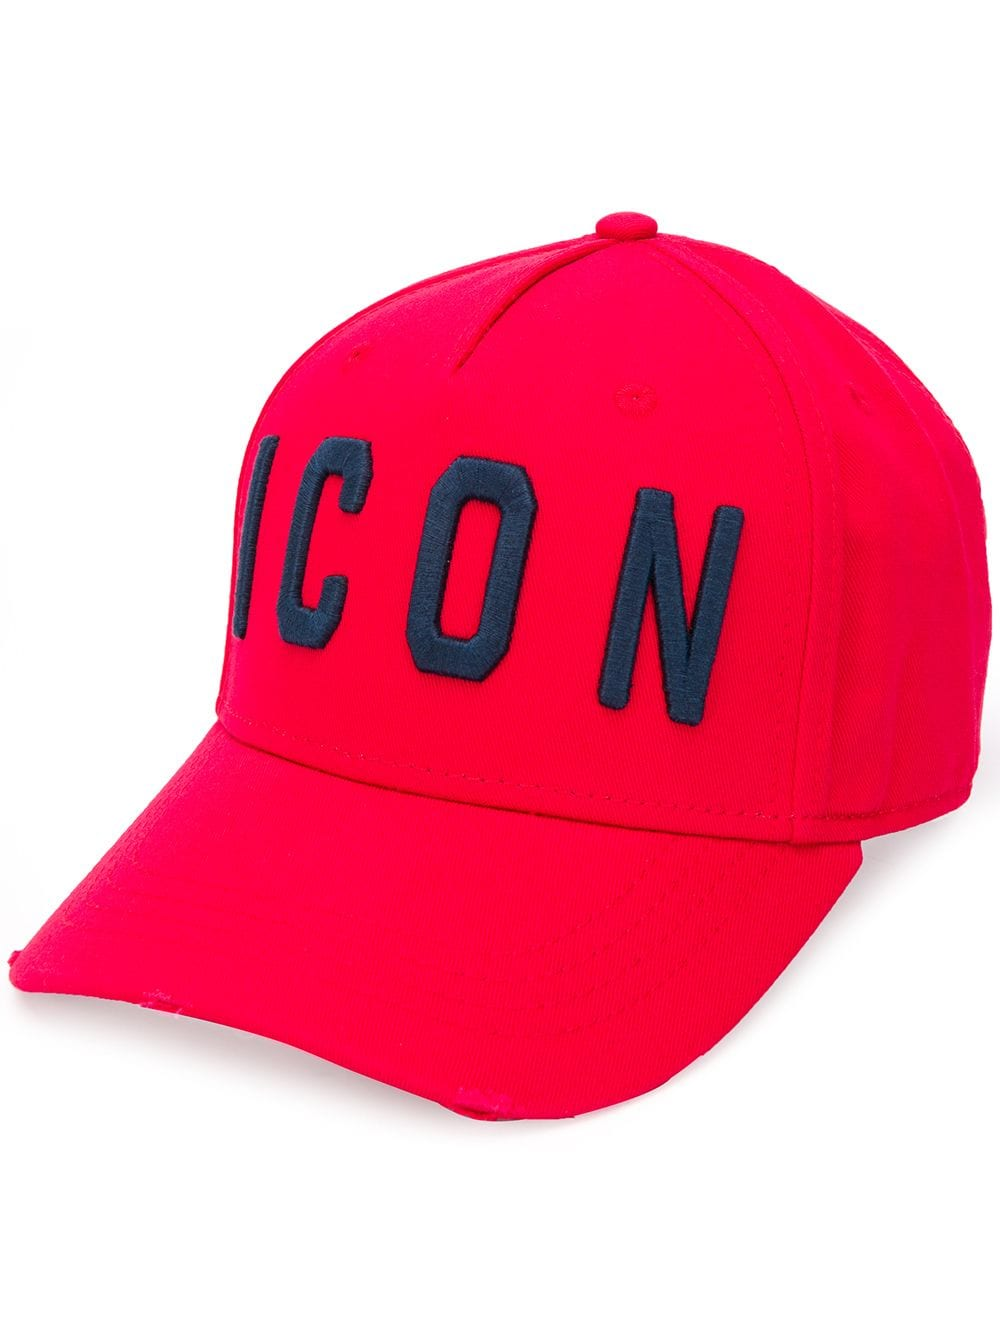 40fc74fc0 DSQUARED2 DSQUARED2 LOGO EMBROIDERED CAP - ROT. #dsquared2 ...